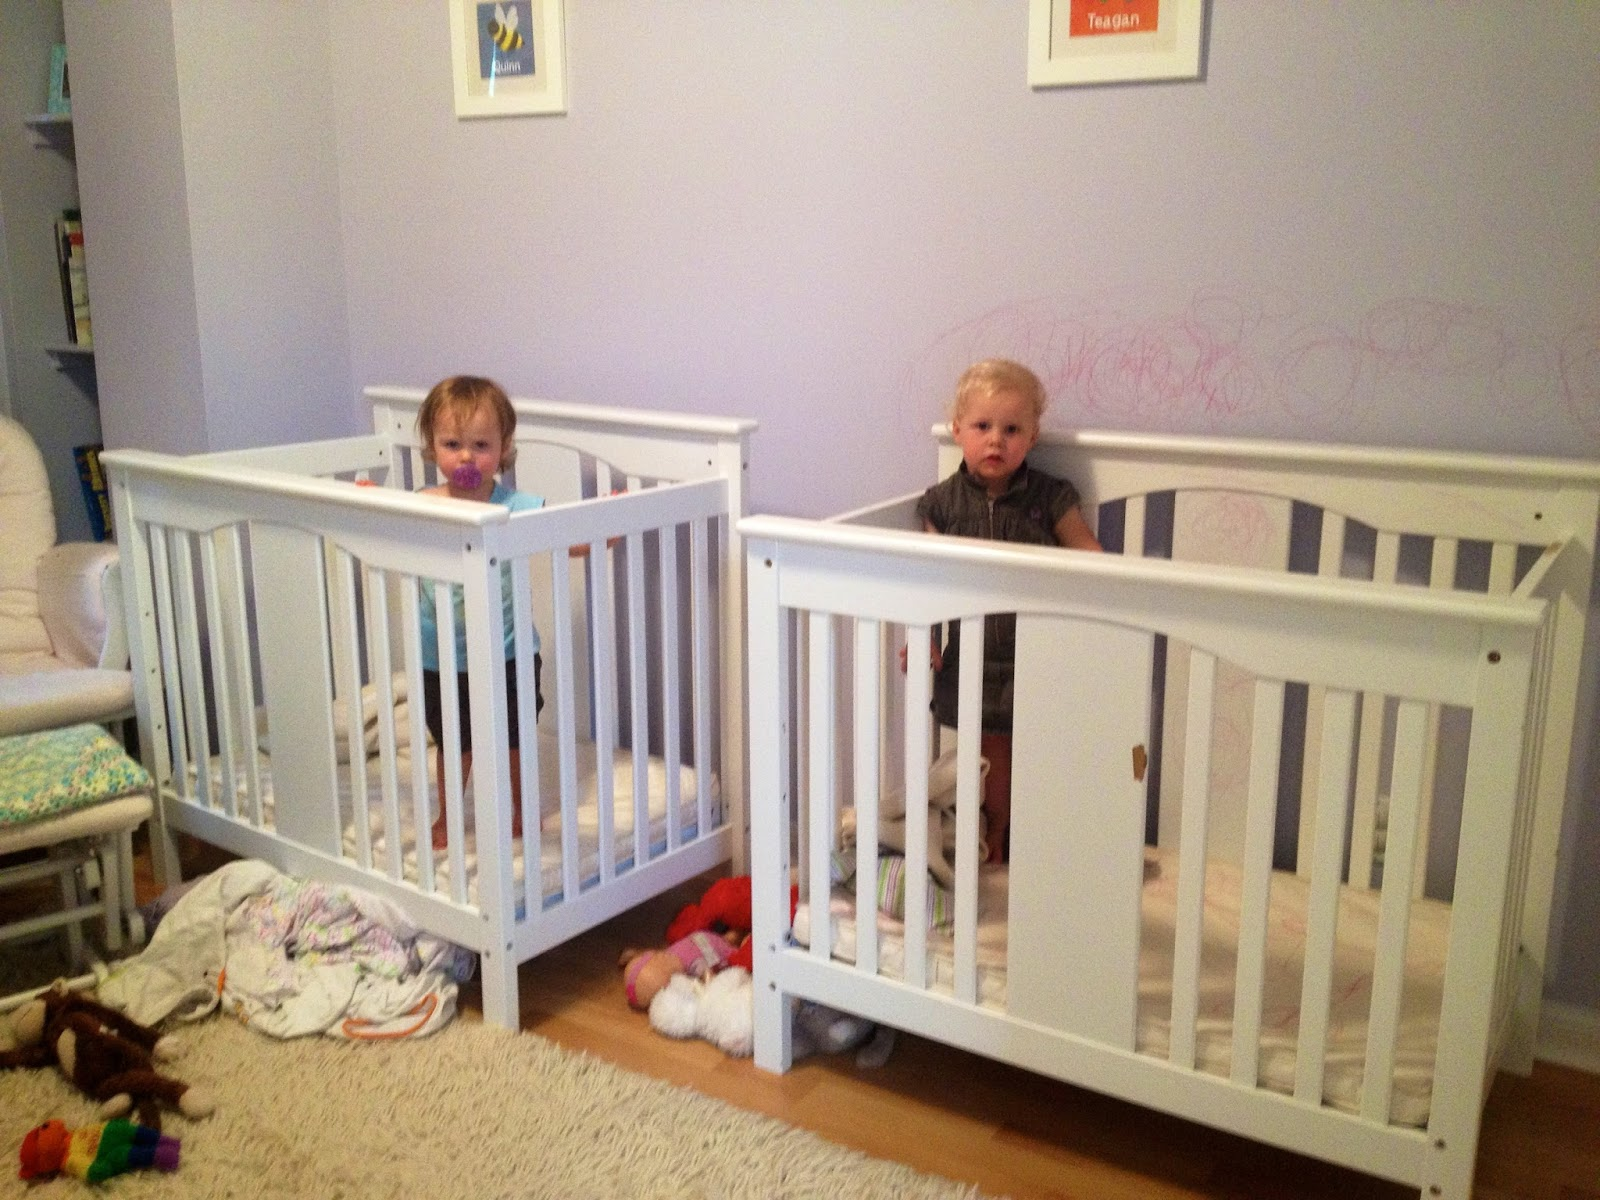 Baby bed for 2 year old - I Heard The Stories And Even Saw The Pictures My Precious Angels Wouldn T Do Those Kinds Of Things When Were Older Think Again Naive Mommy